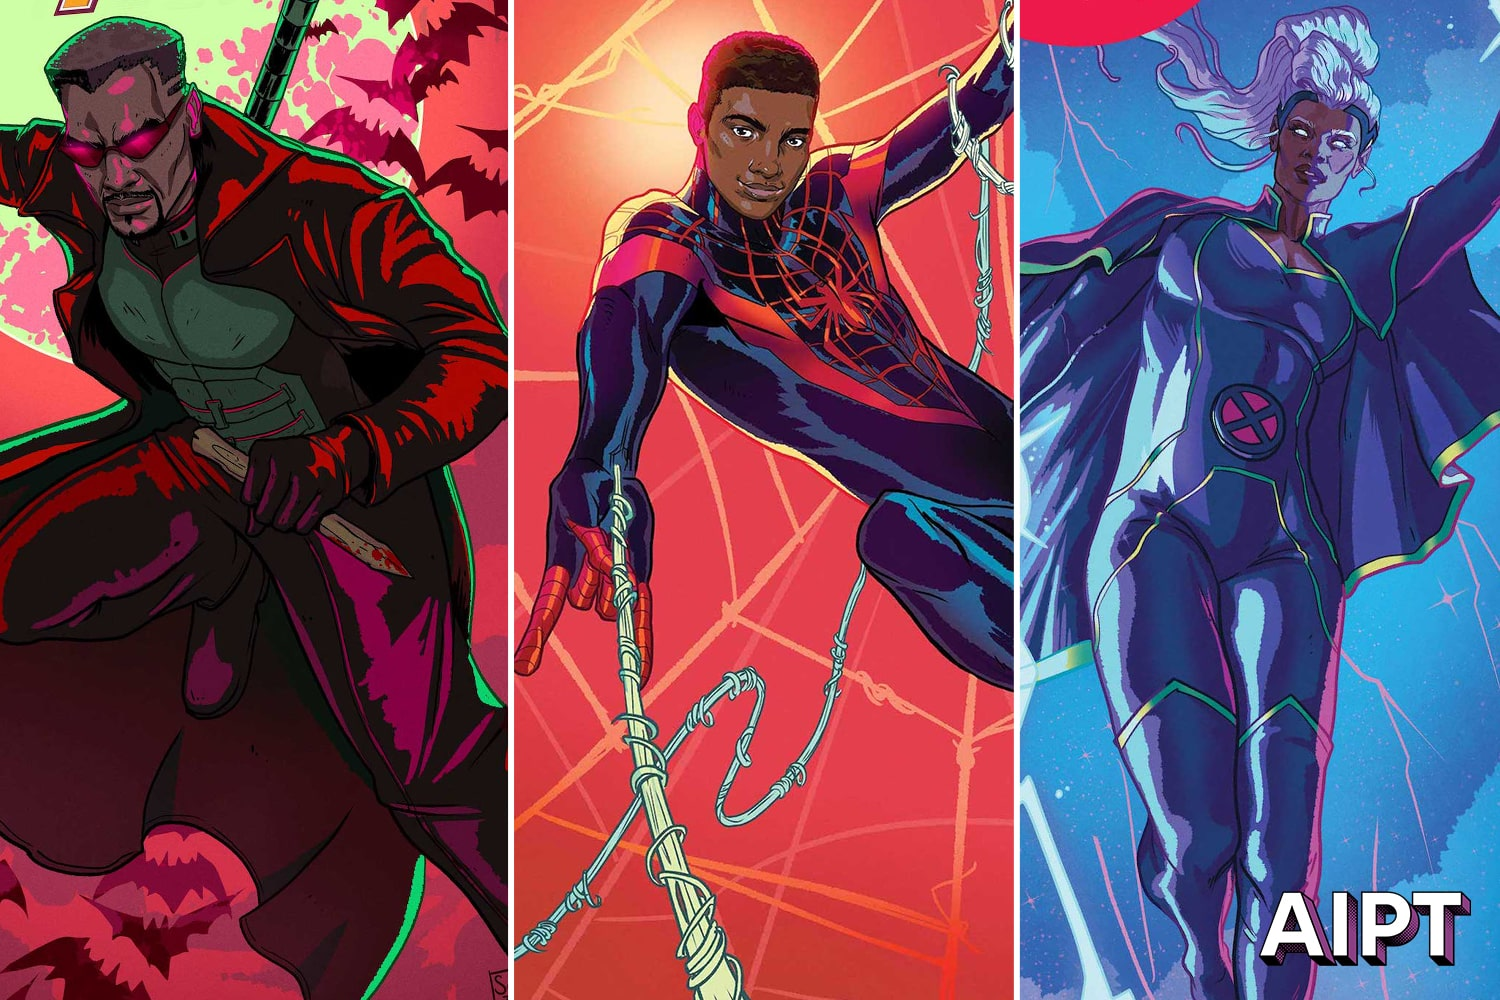 Marvel celebrating Black History Month with Ernanda Souza covers